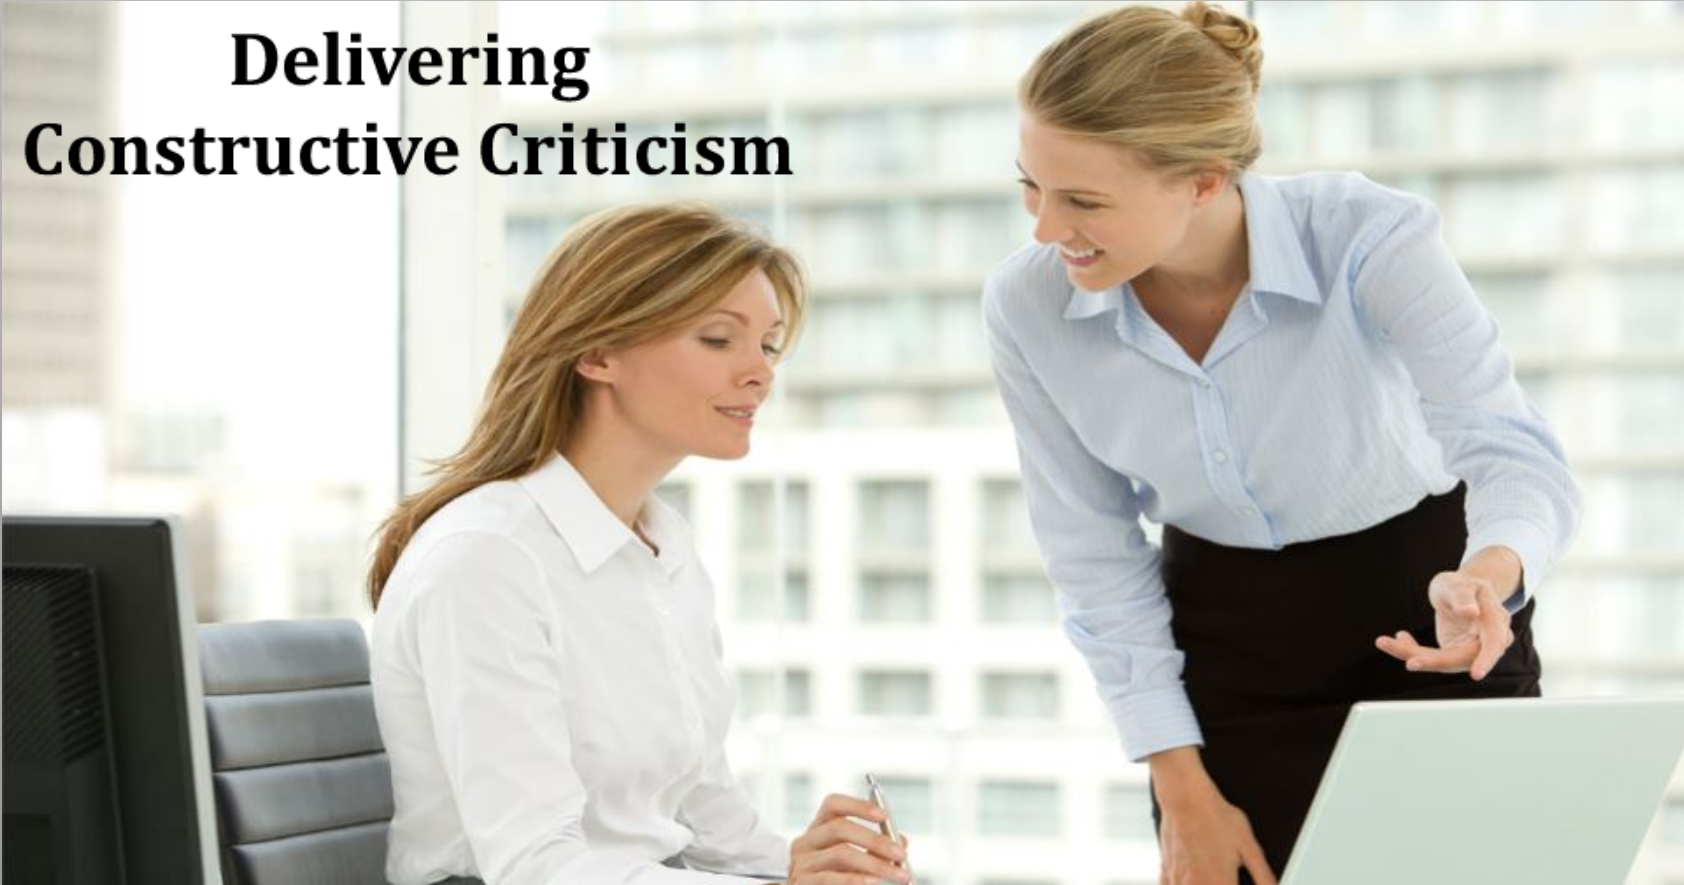 Delivering Constructive Criticism